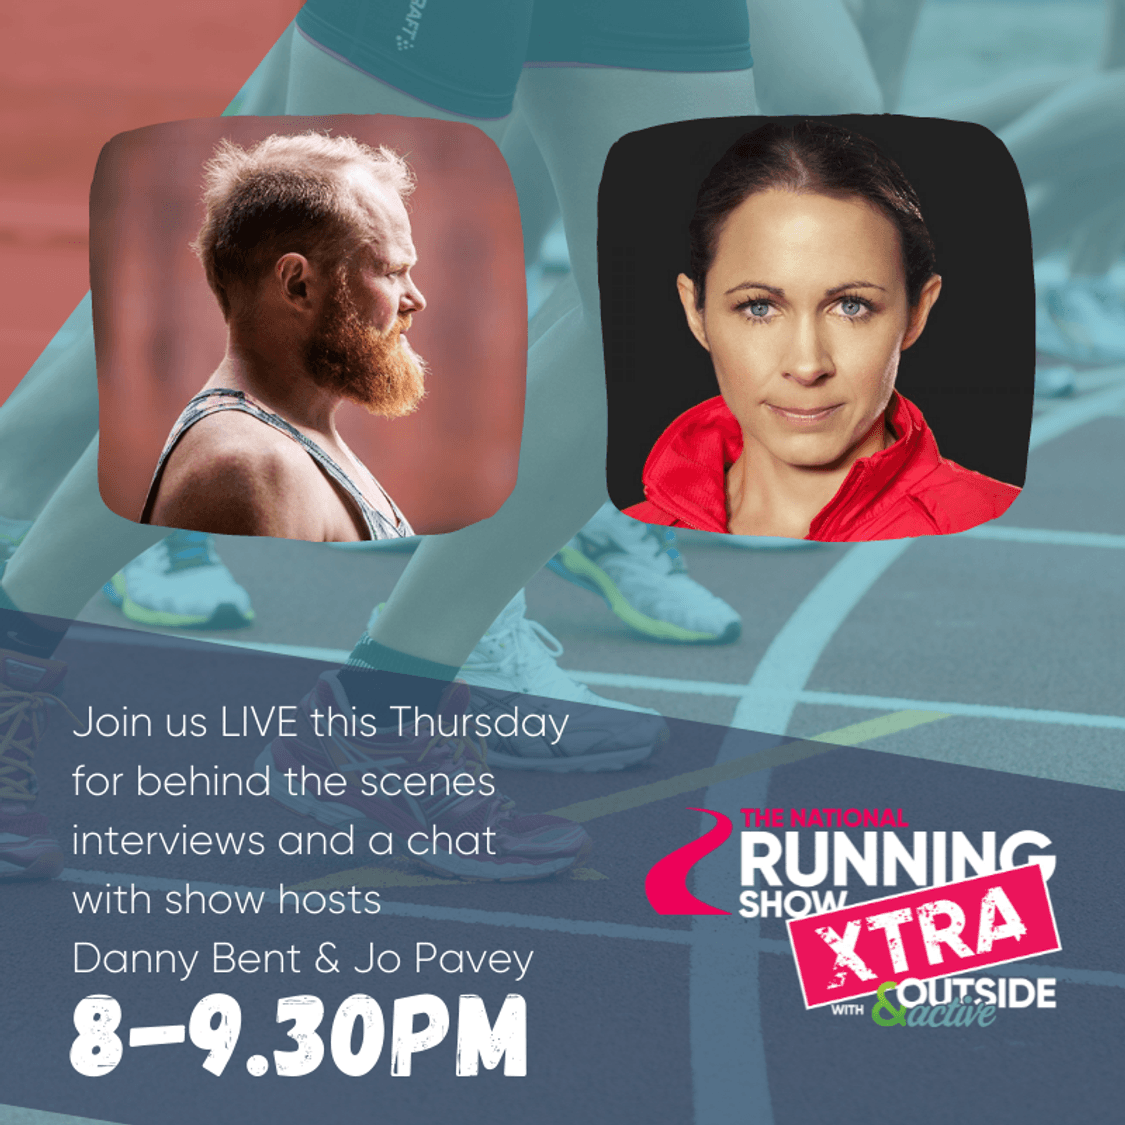 National Running Show Xtra Outside Active